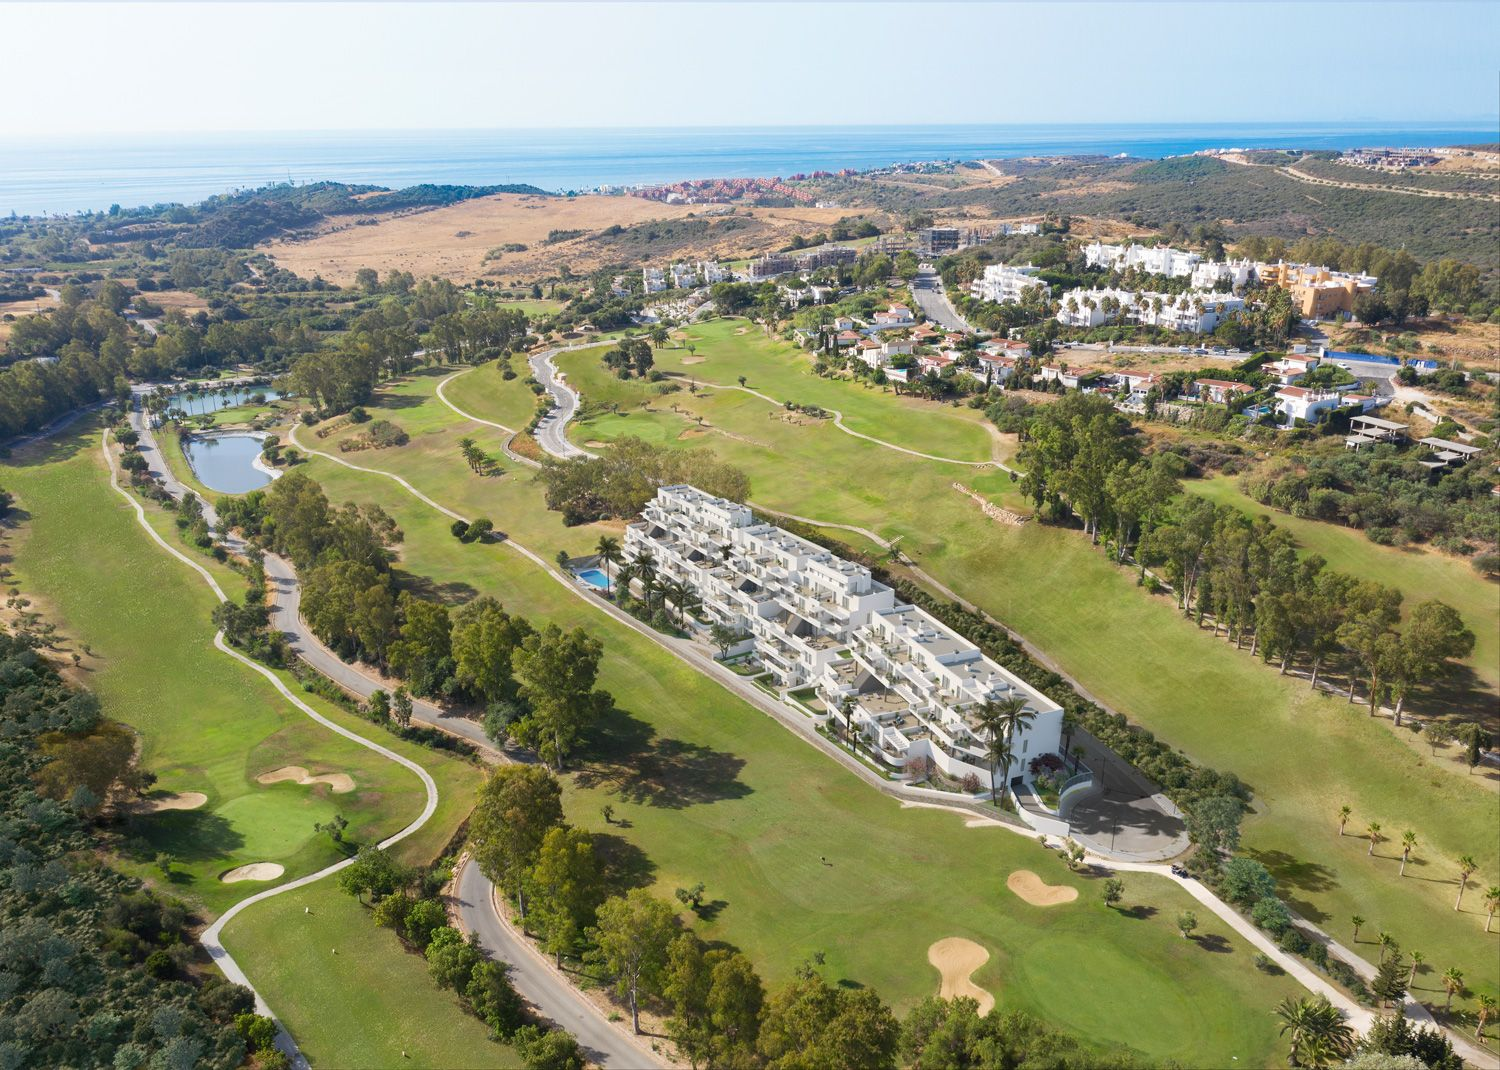 Apartments with views over golf courses in Estepona 14